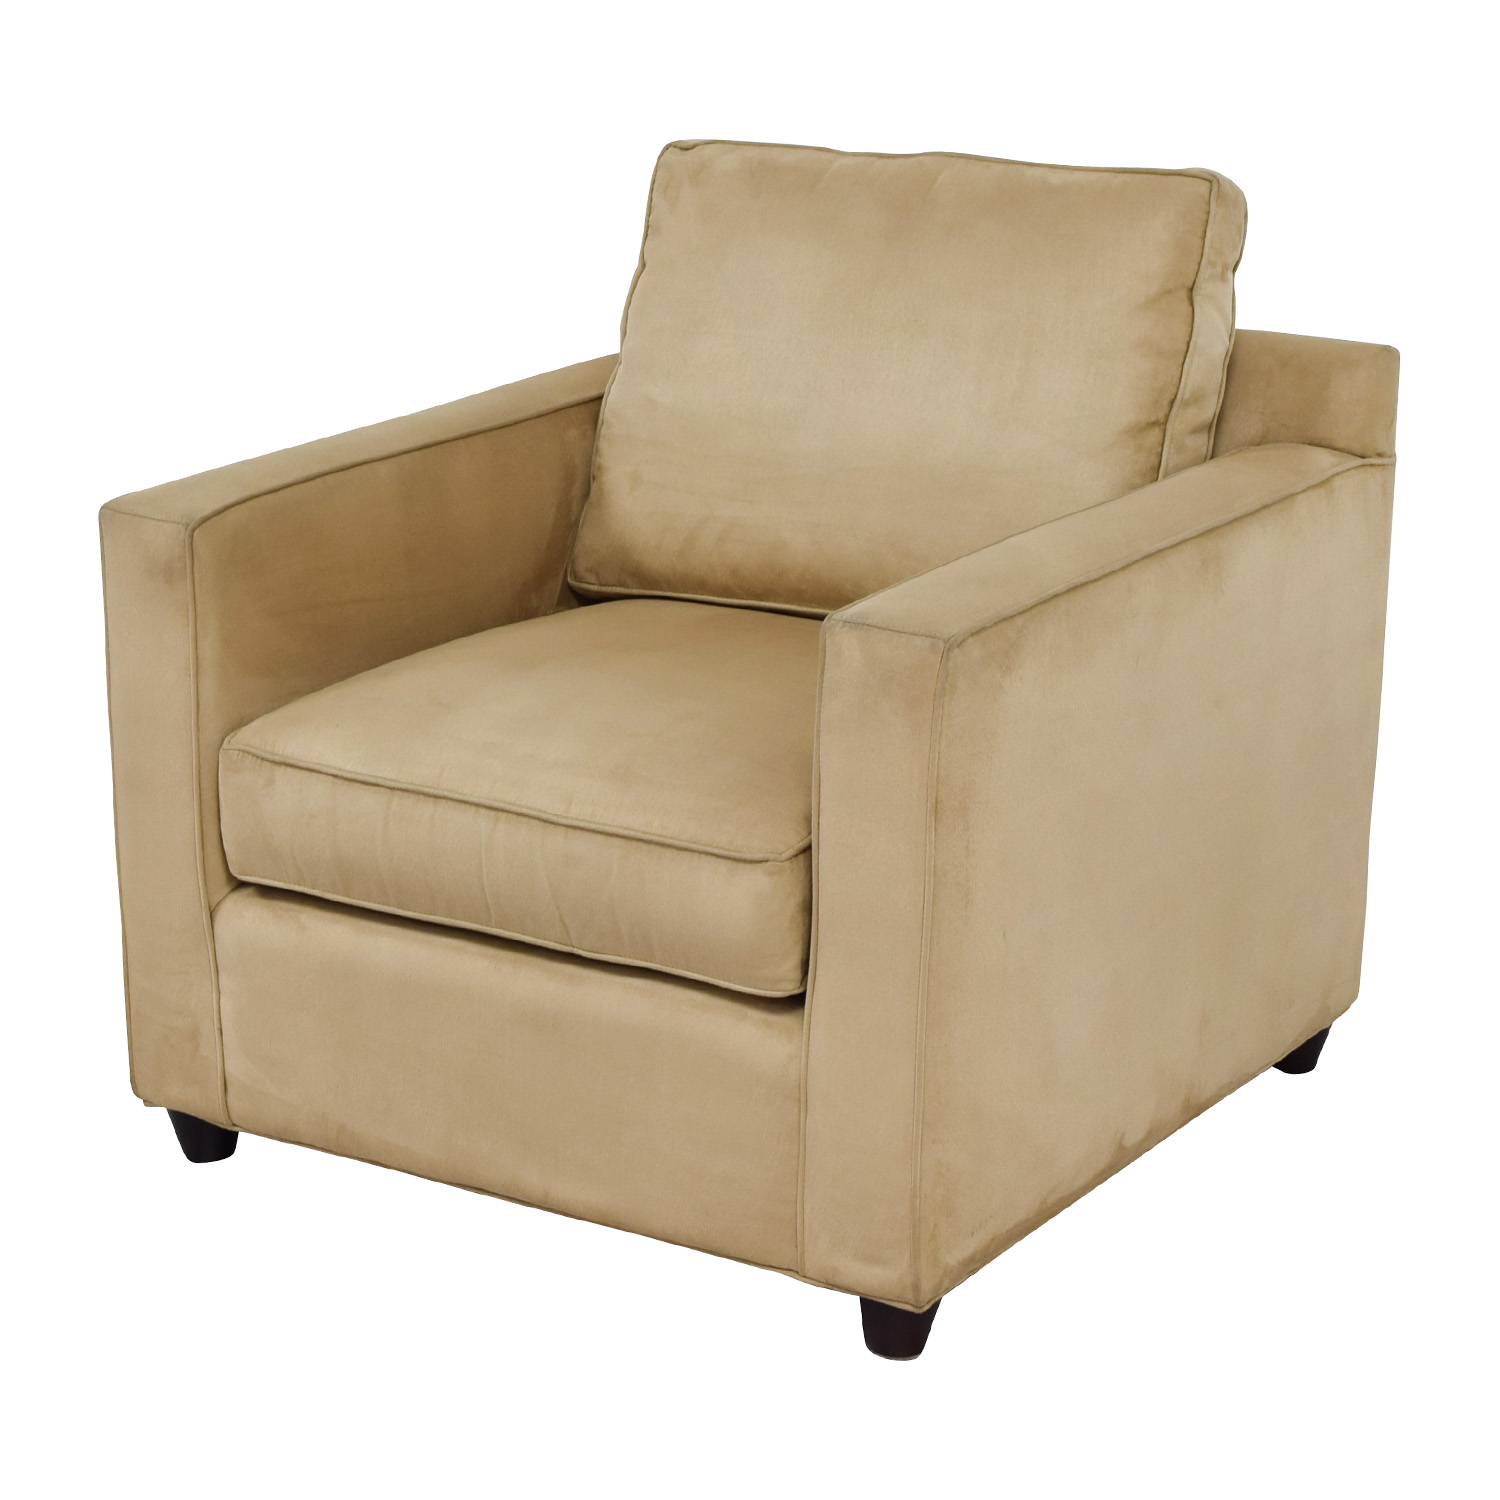 chairs crate and barrel reclining gaming chair 87 off davis